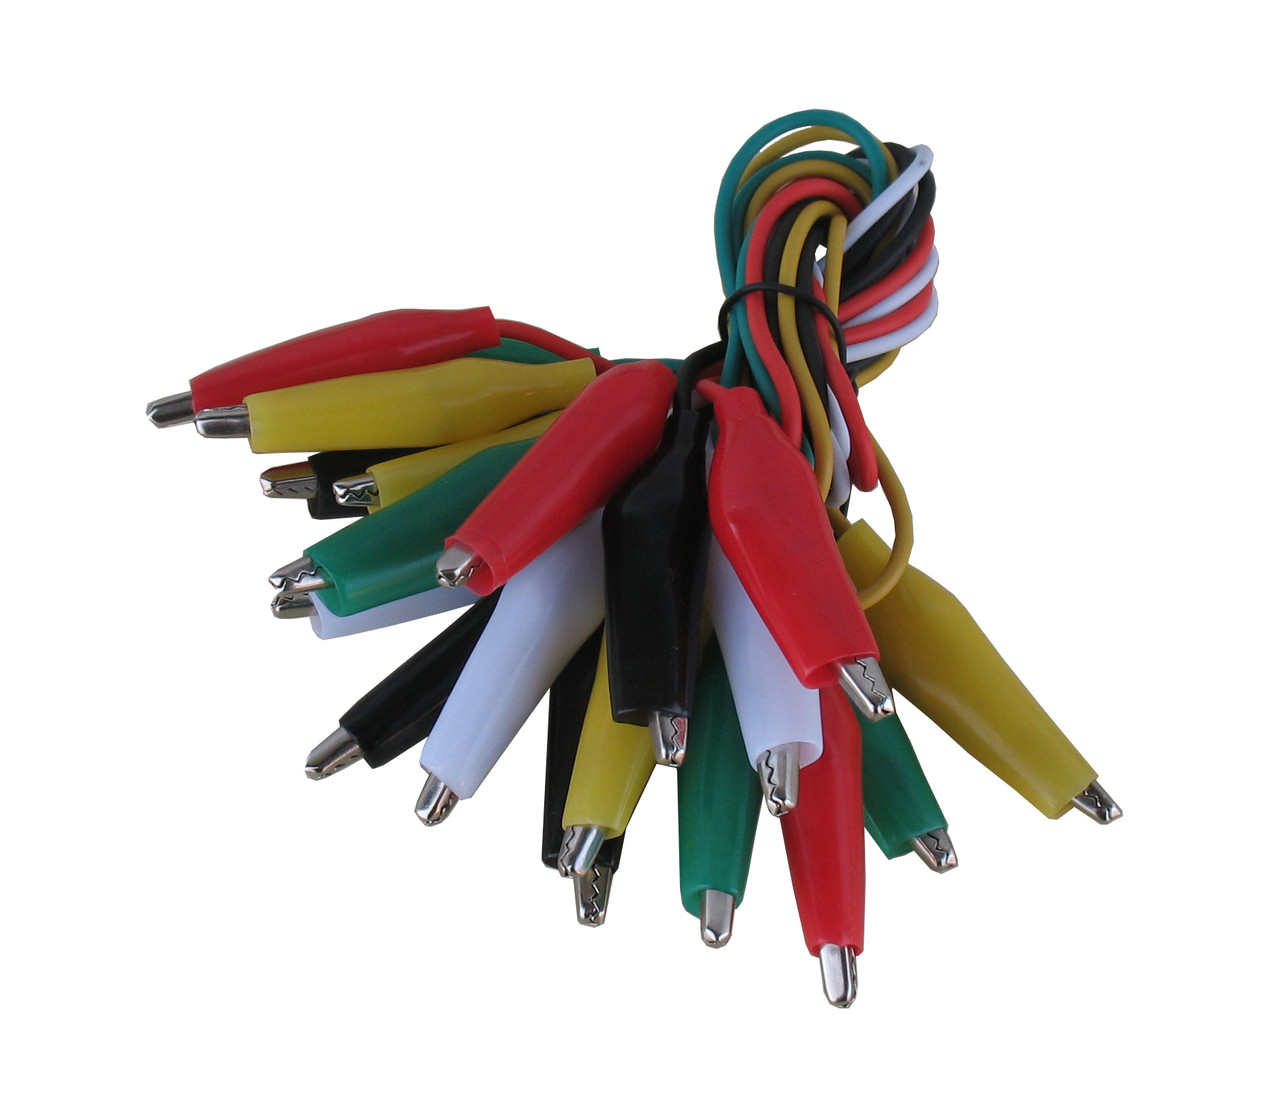 Jumper wires, Test lead set with Alligator Clips, Set of 10 wires, 5 Colors